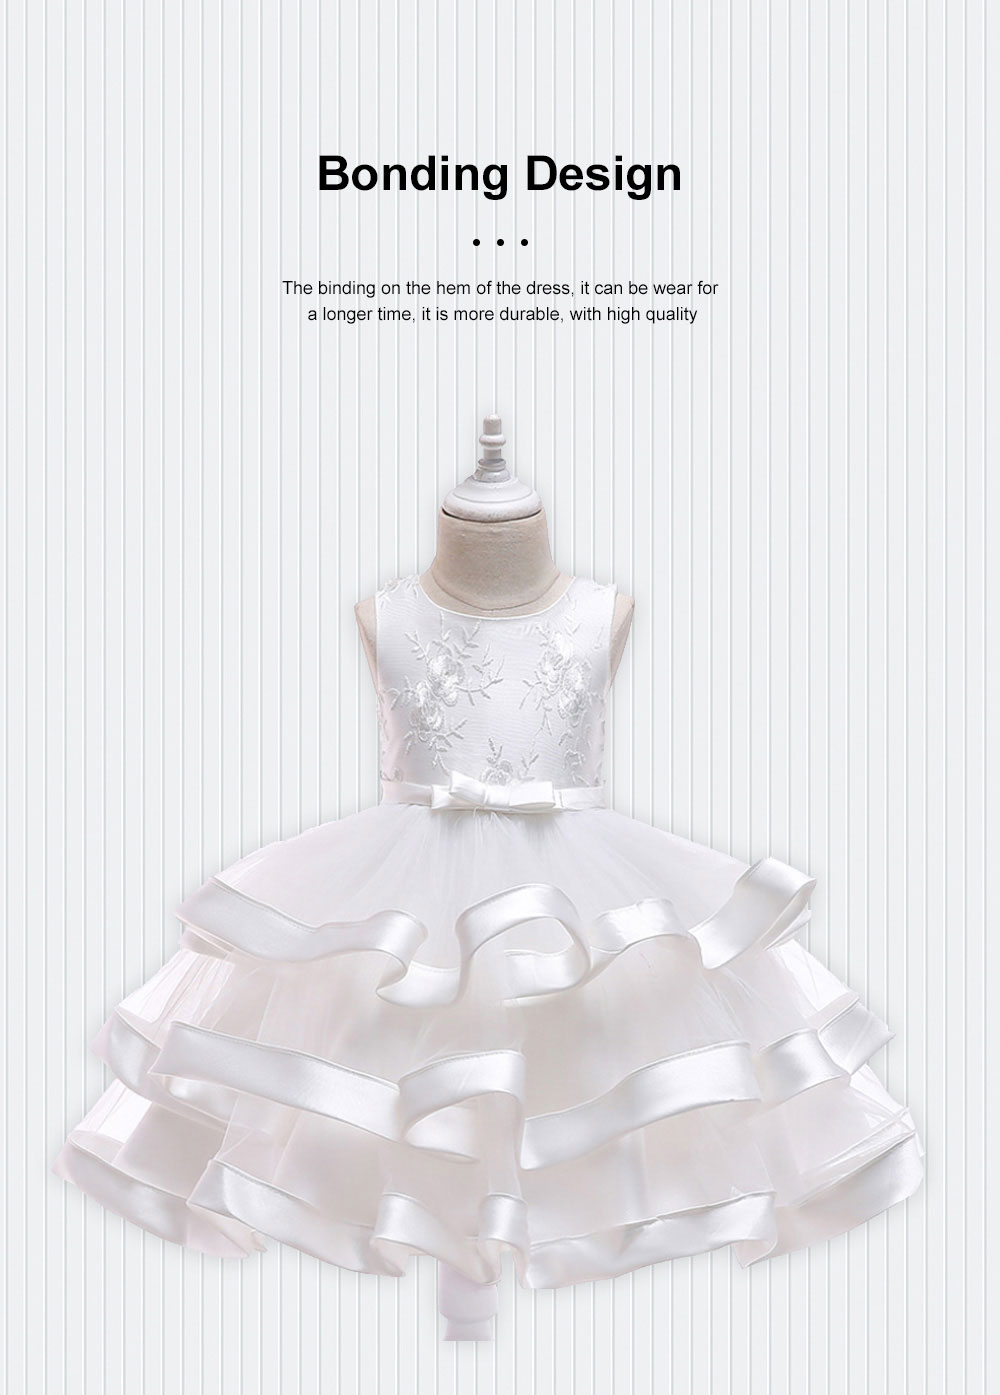 Female Flower Skirts Kids Girls Flower Wedding Dress, Multi-layer Mesh Gauze skirt, Multi-layered Show Dress Party Suit 1